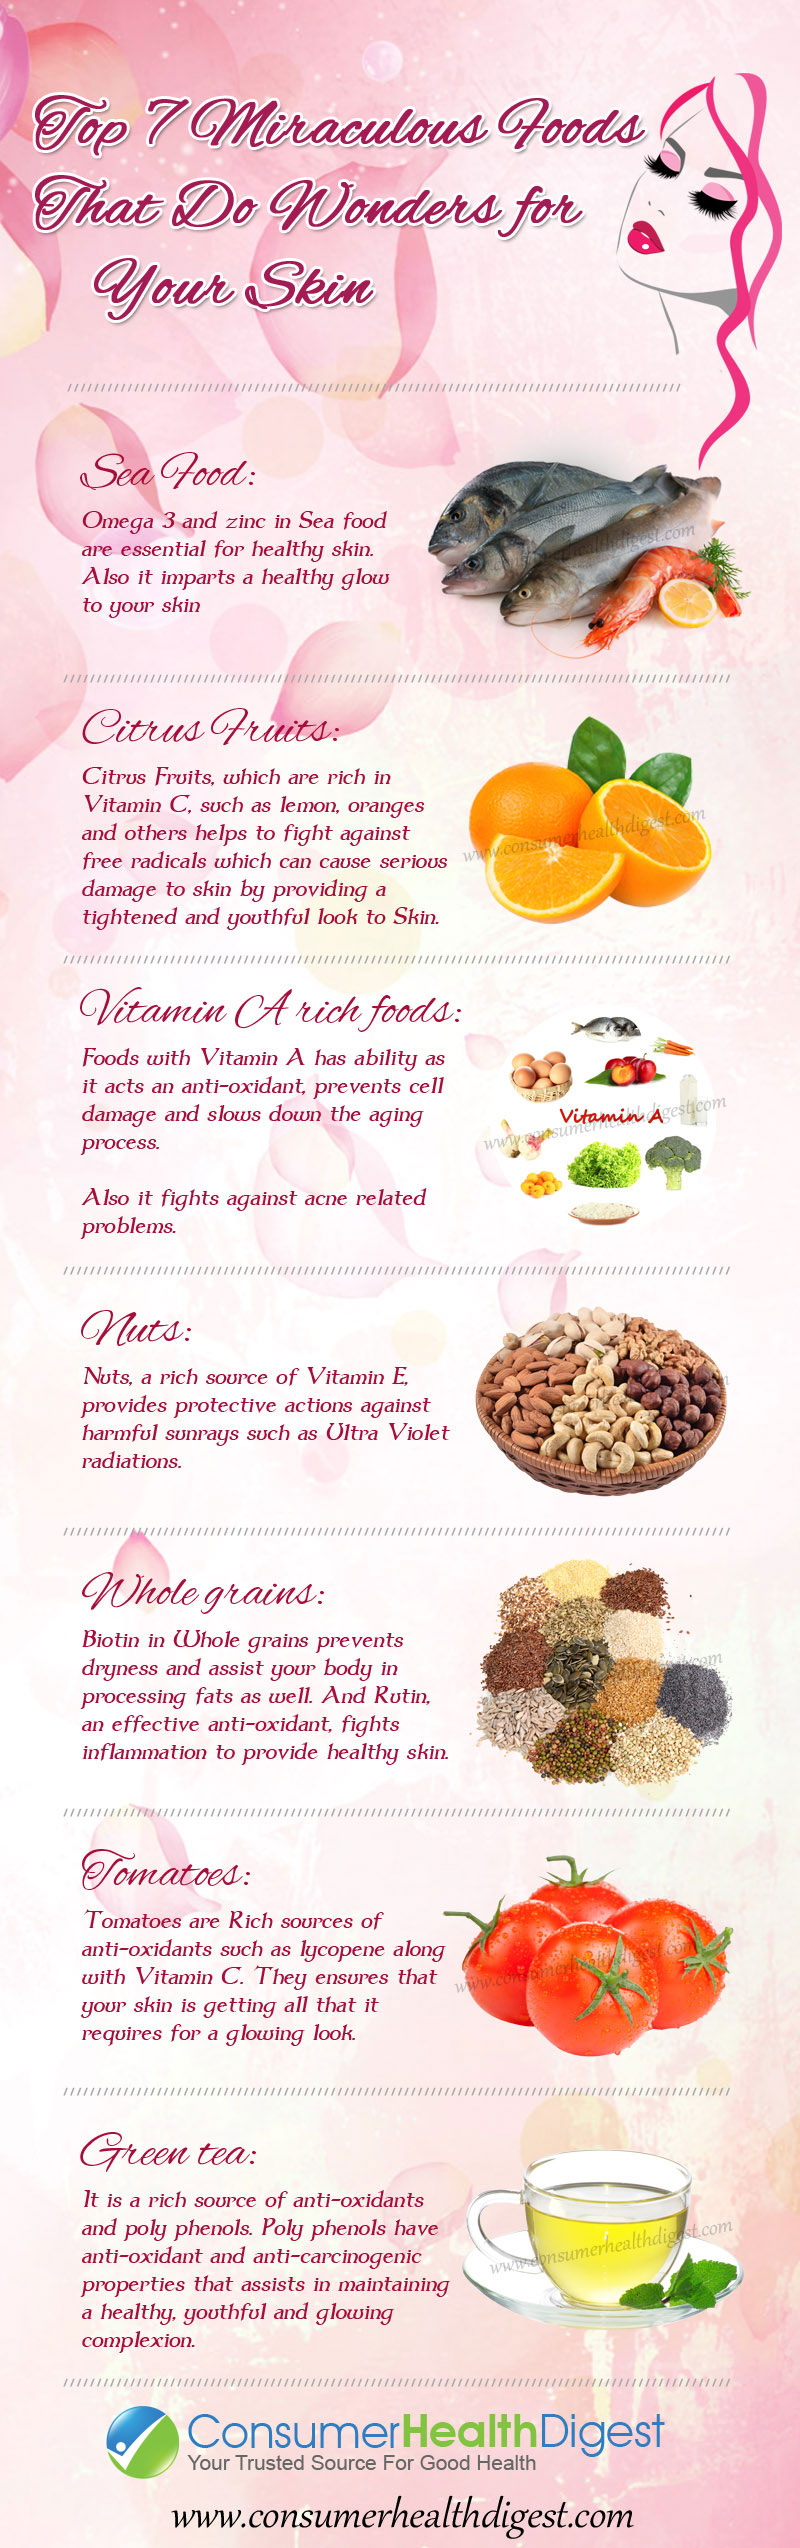 7 Miraculous Foods for Healthy Skin